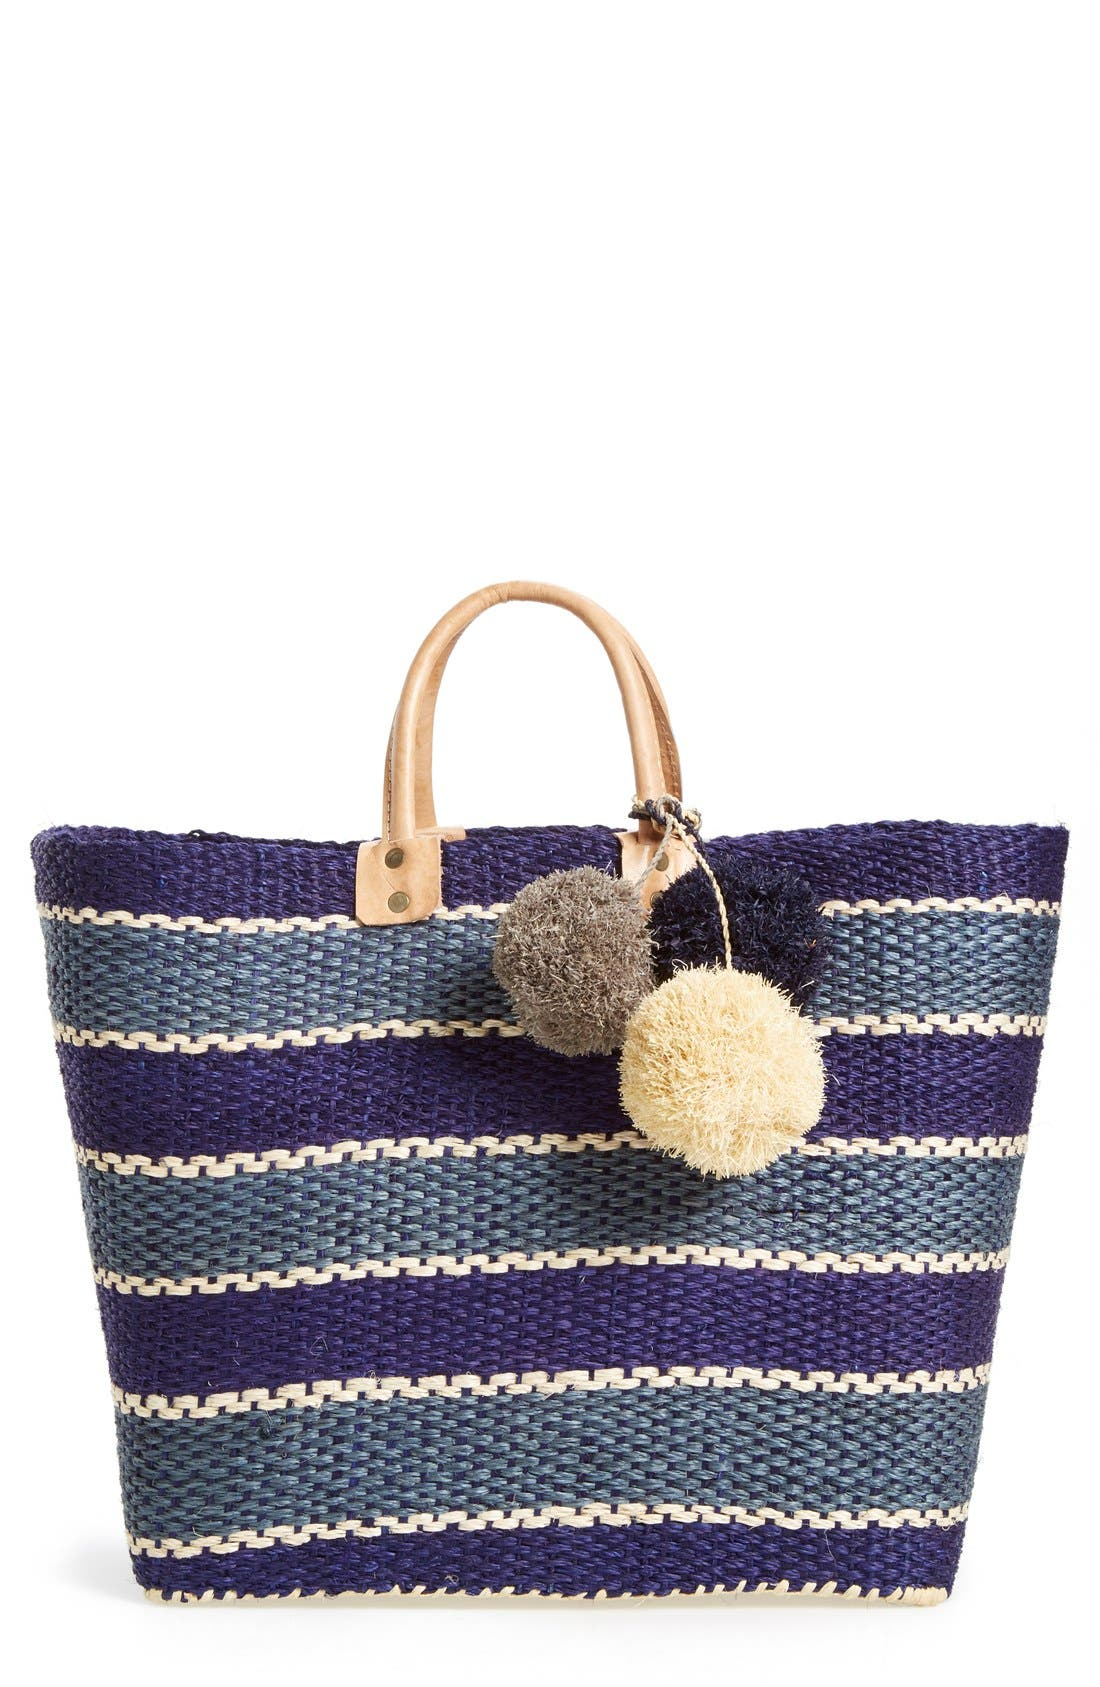 Mar y Sol 'Capri' Woven Tote with Pom Charms